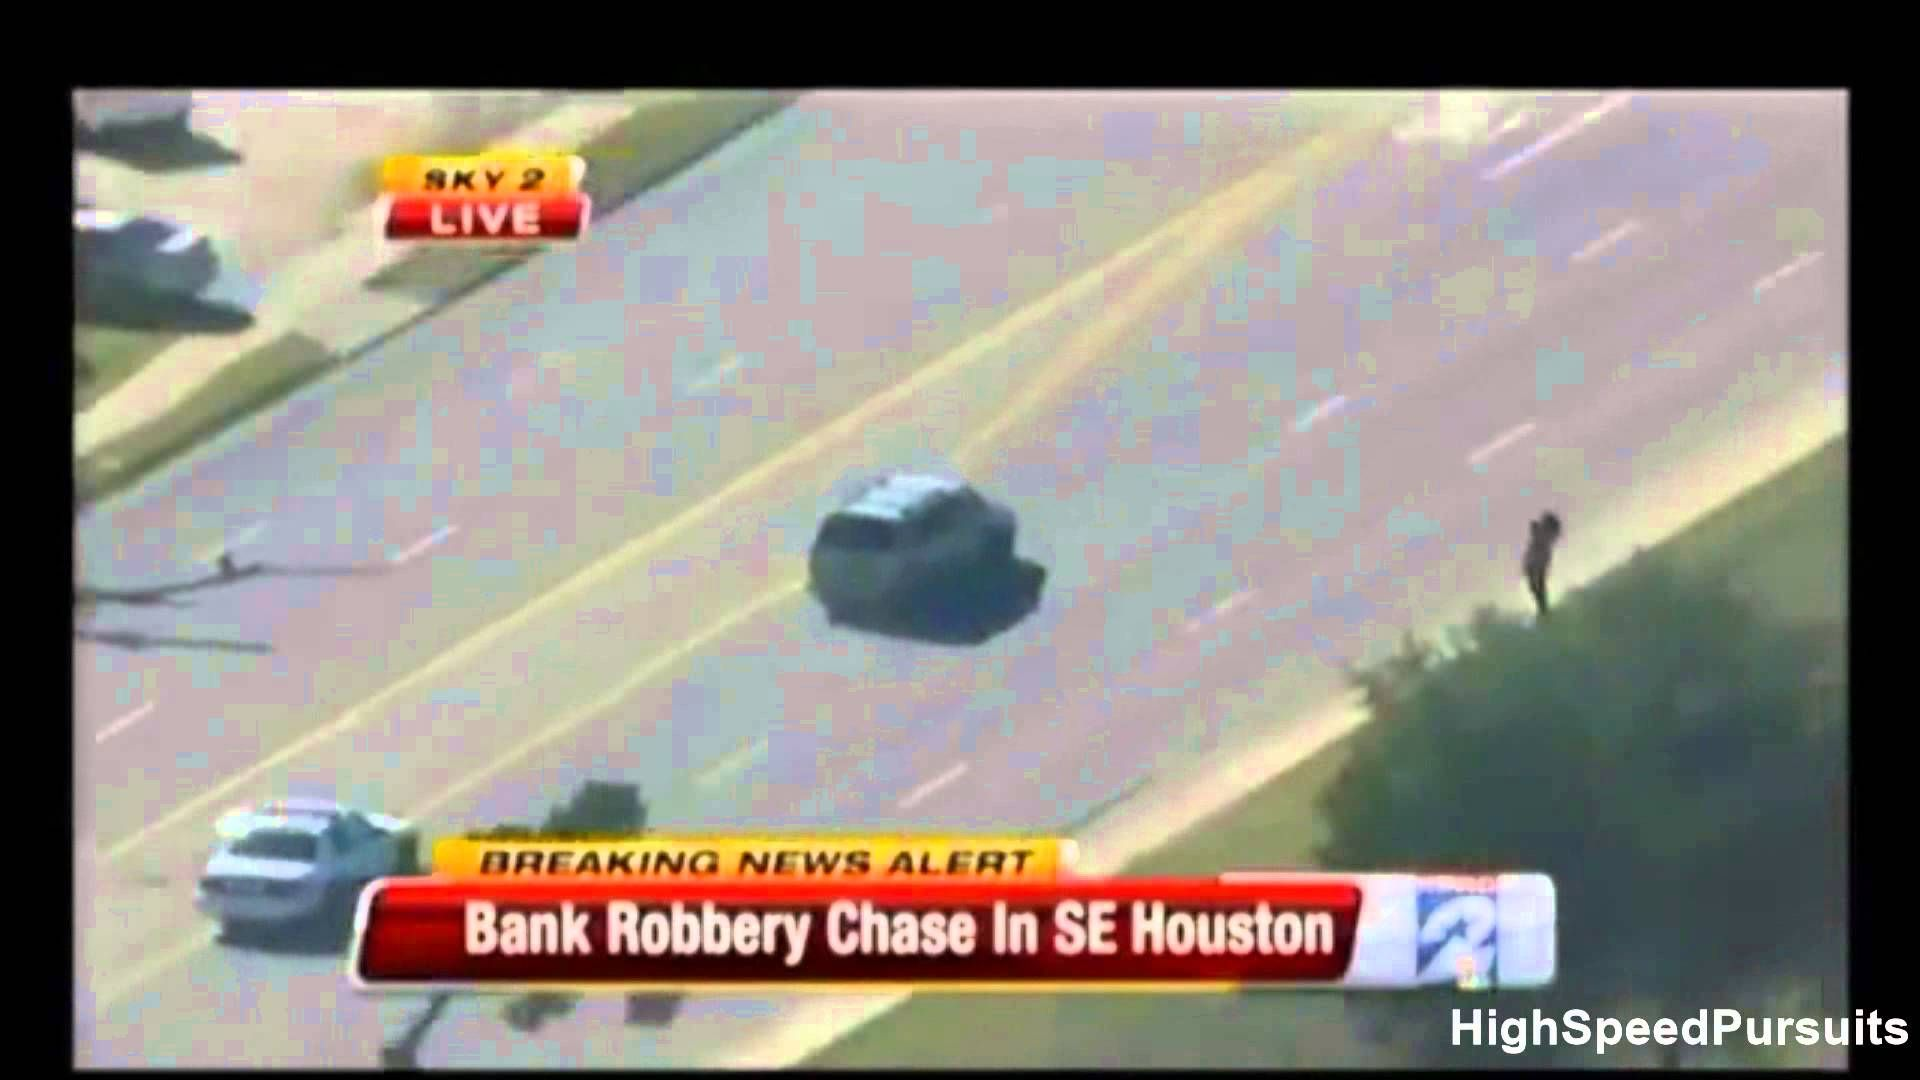 Texas High Speed Police Chase Armed Bank Robbers | All Police